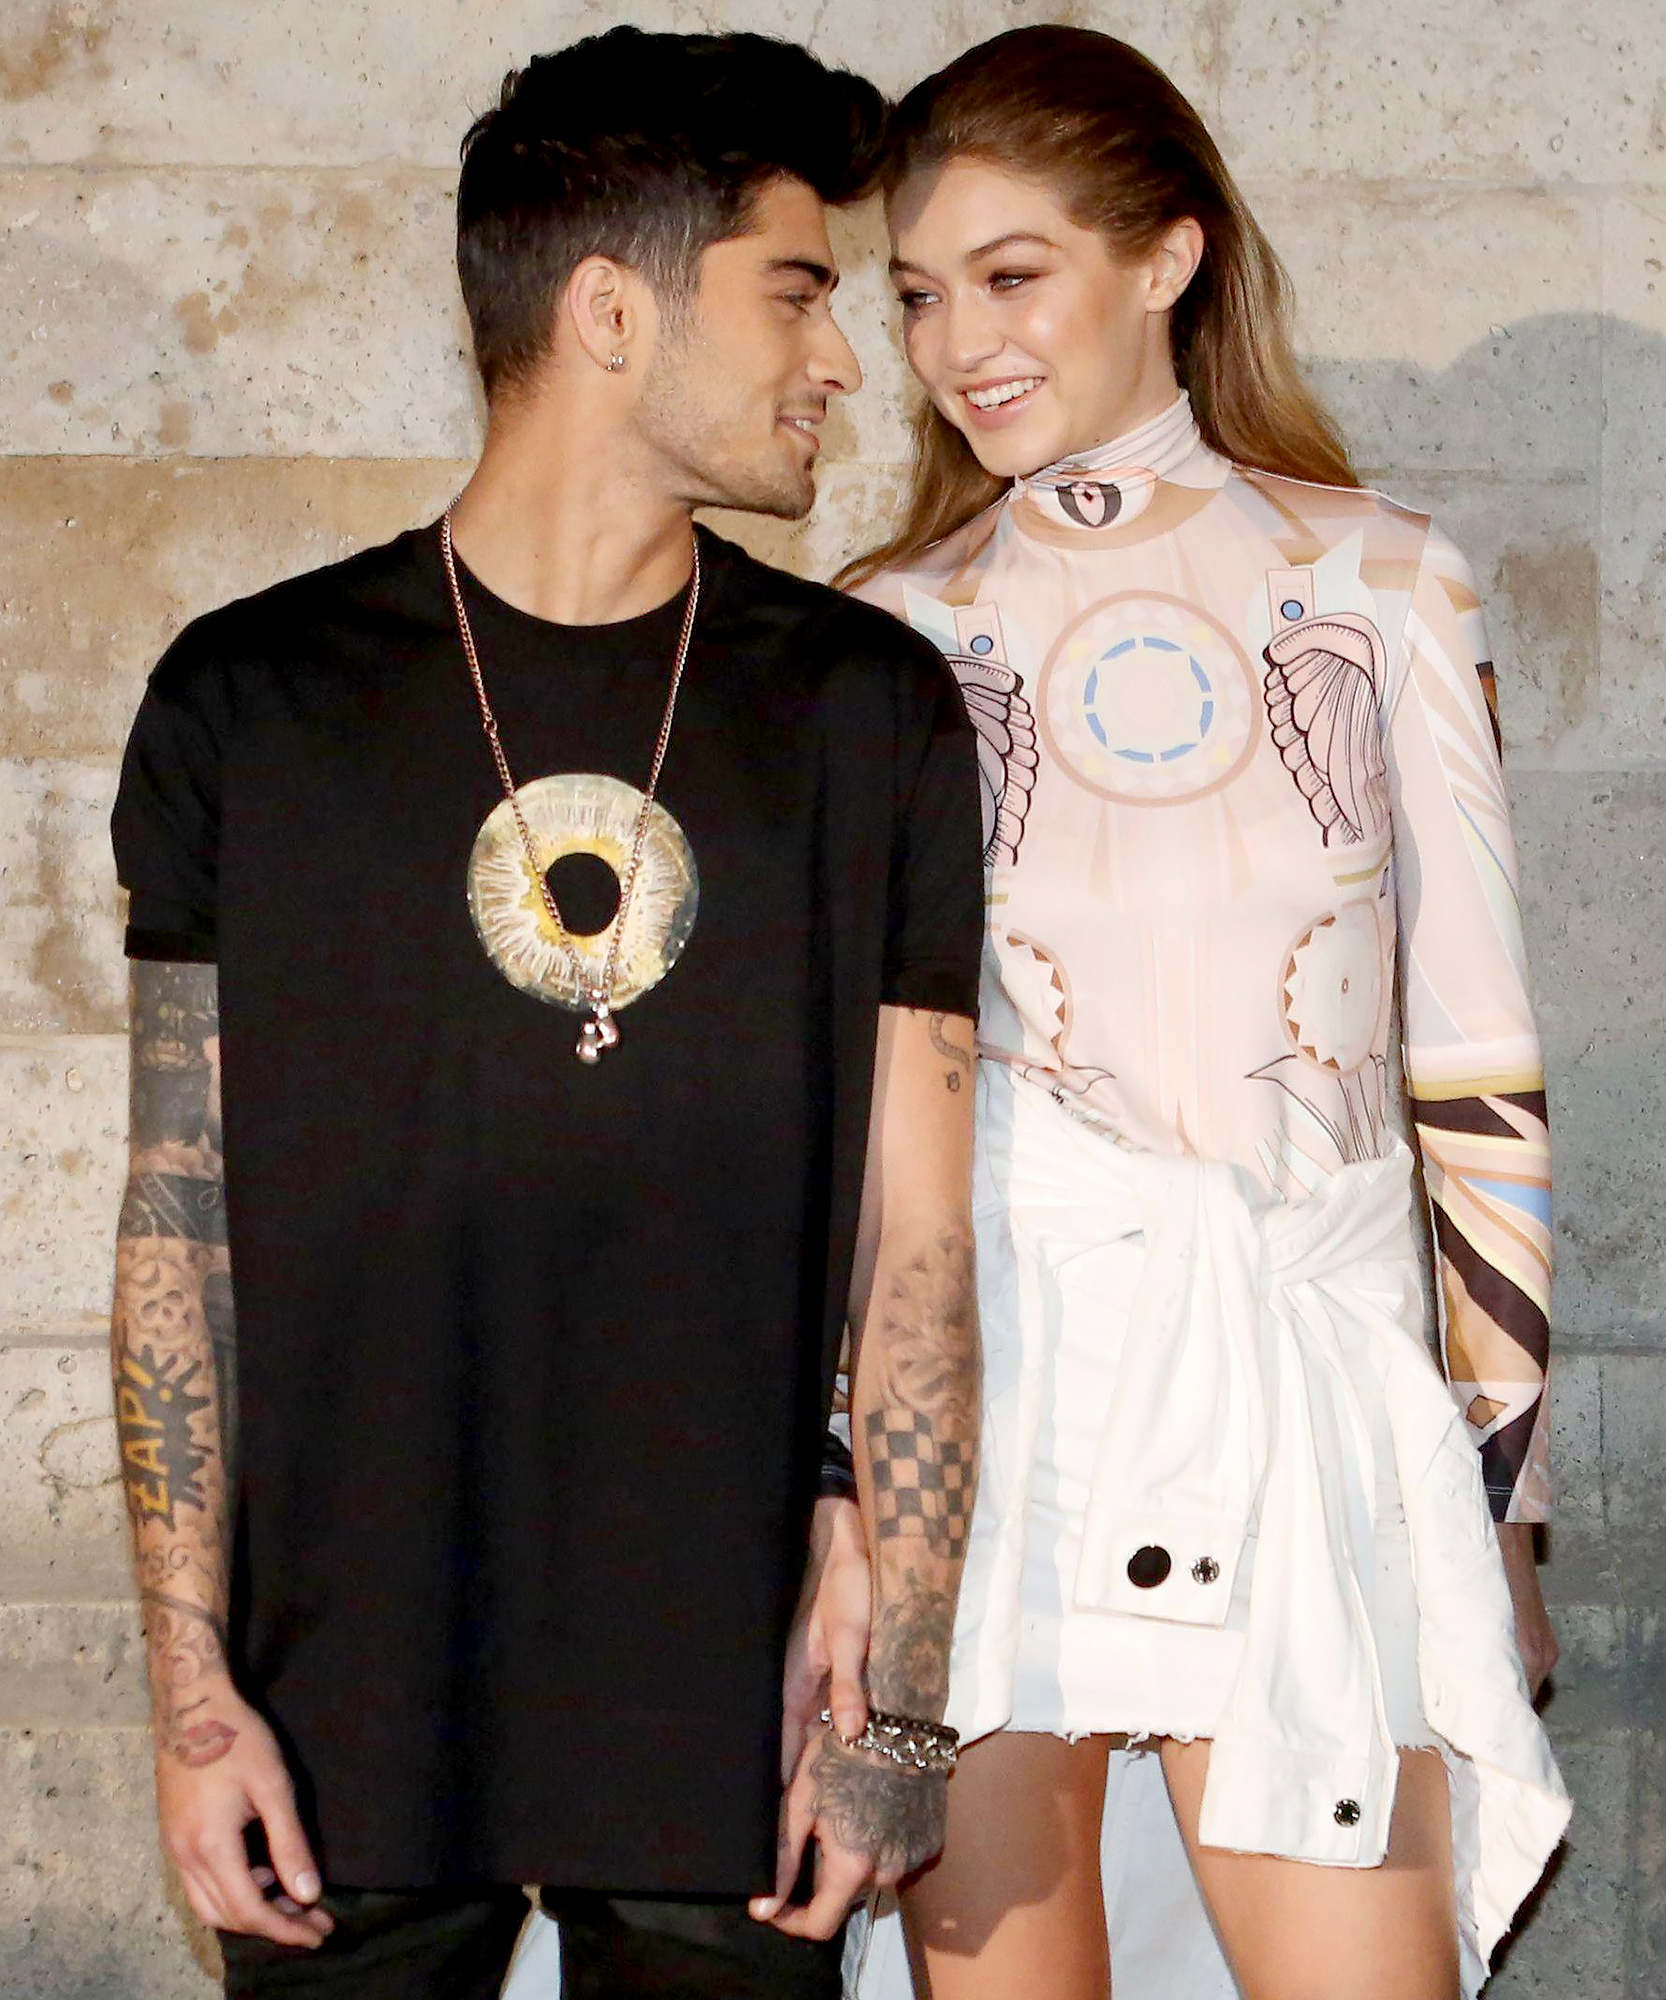 Gigi Hadid Talked About Starting a Family Months Before Pregnancy News 2